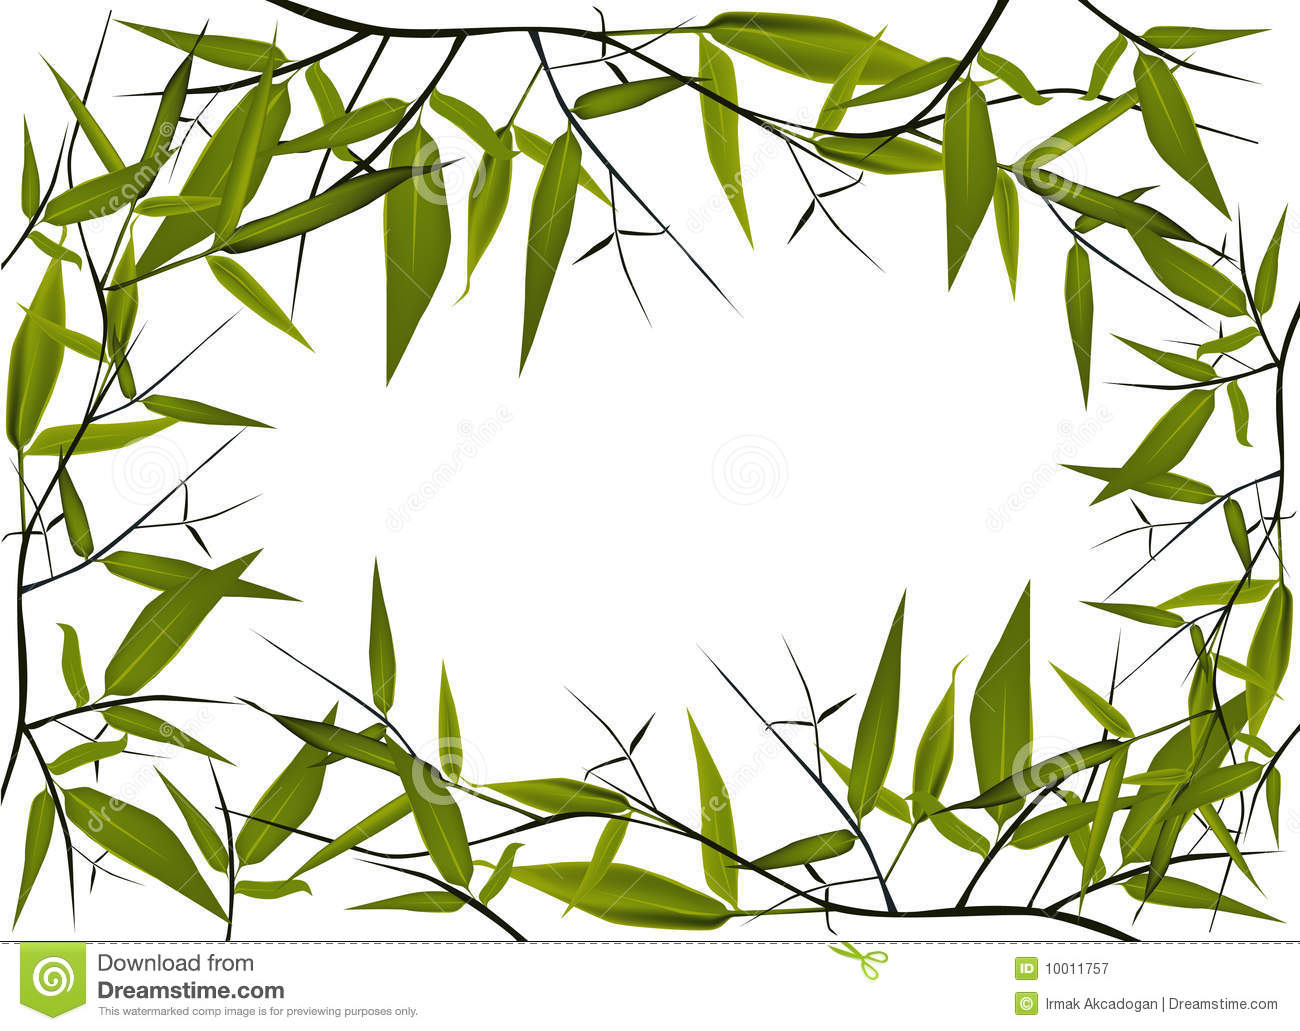 Bamboo Frame Royalty Free Stock Photography - Image: 10011757